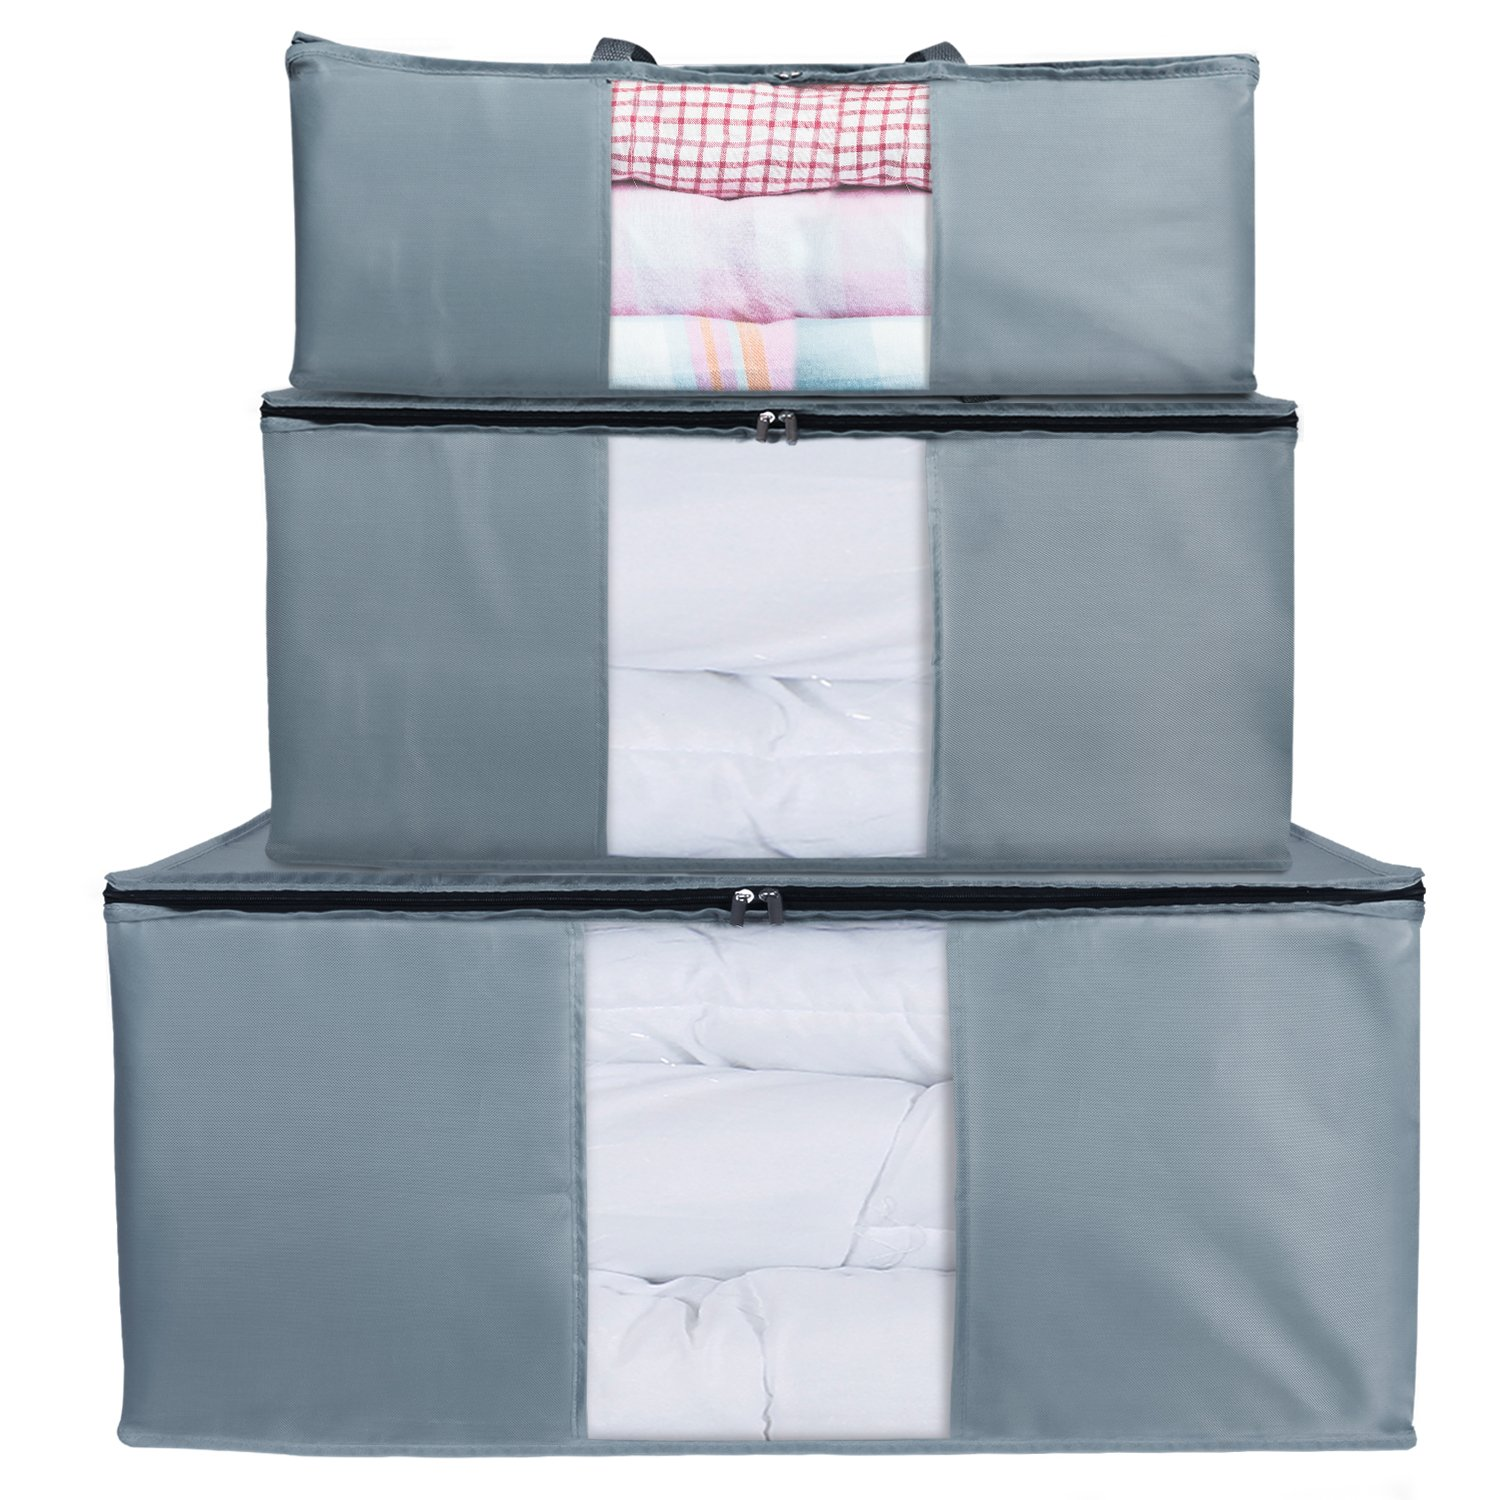 Lifewit Pack of 3 Different Size Storage Bag, Folding Organizer Bag, Under Bed Storage, College Carrying Bag for Bedding Comforters, Blanket, Clothes, Grey